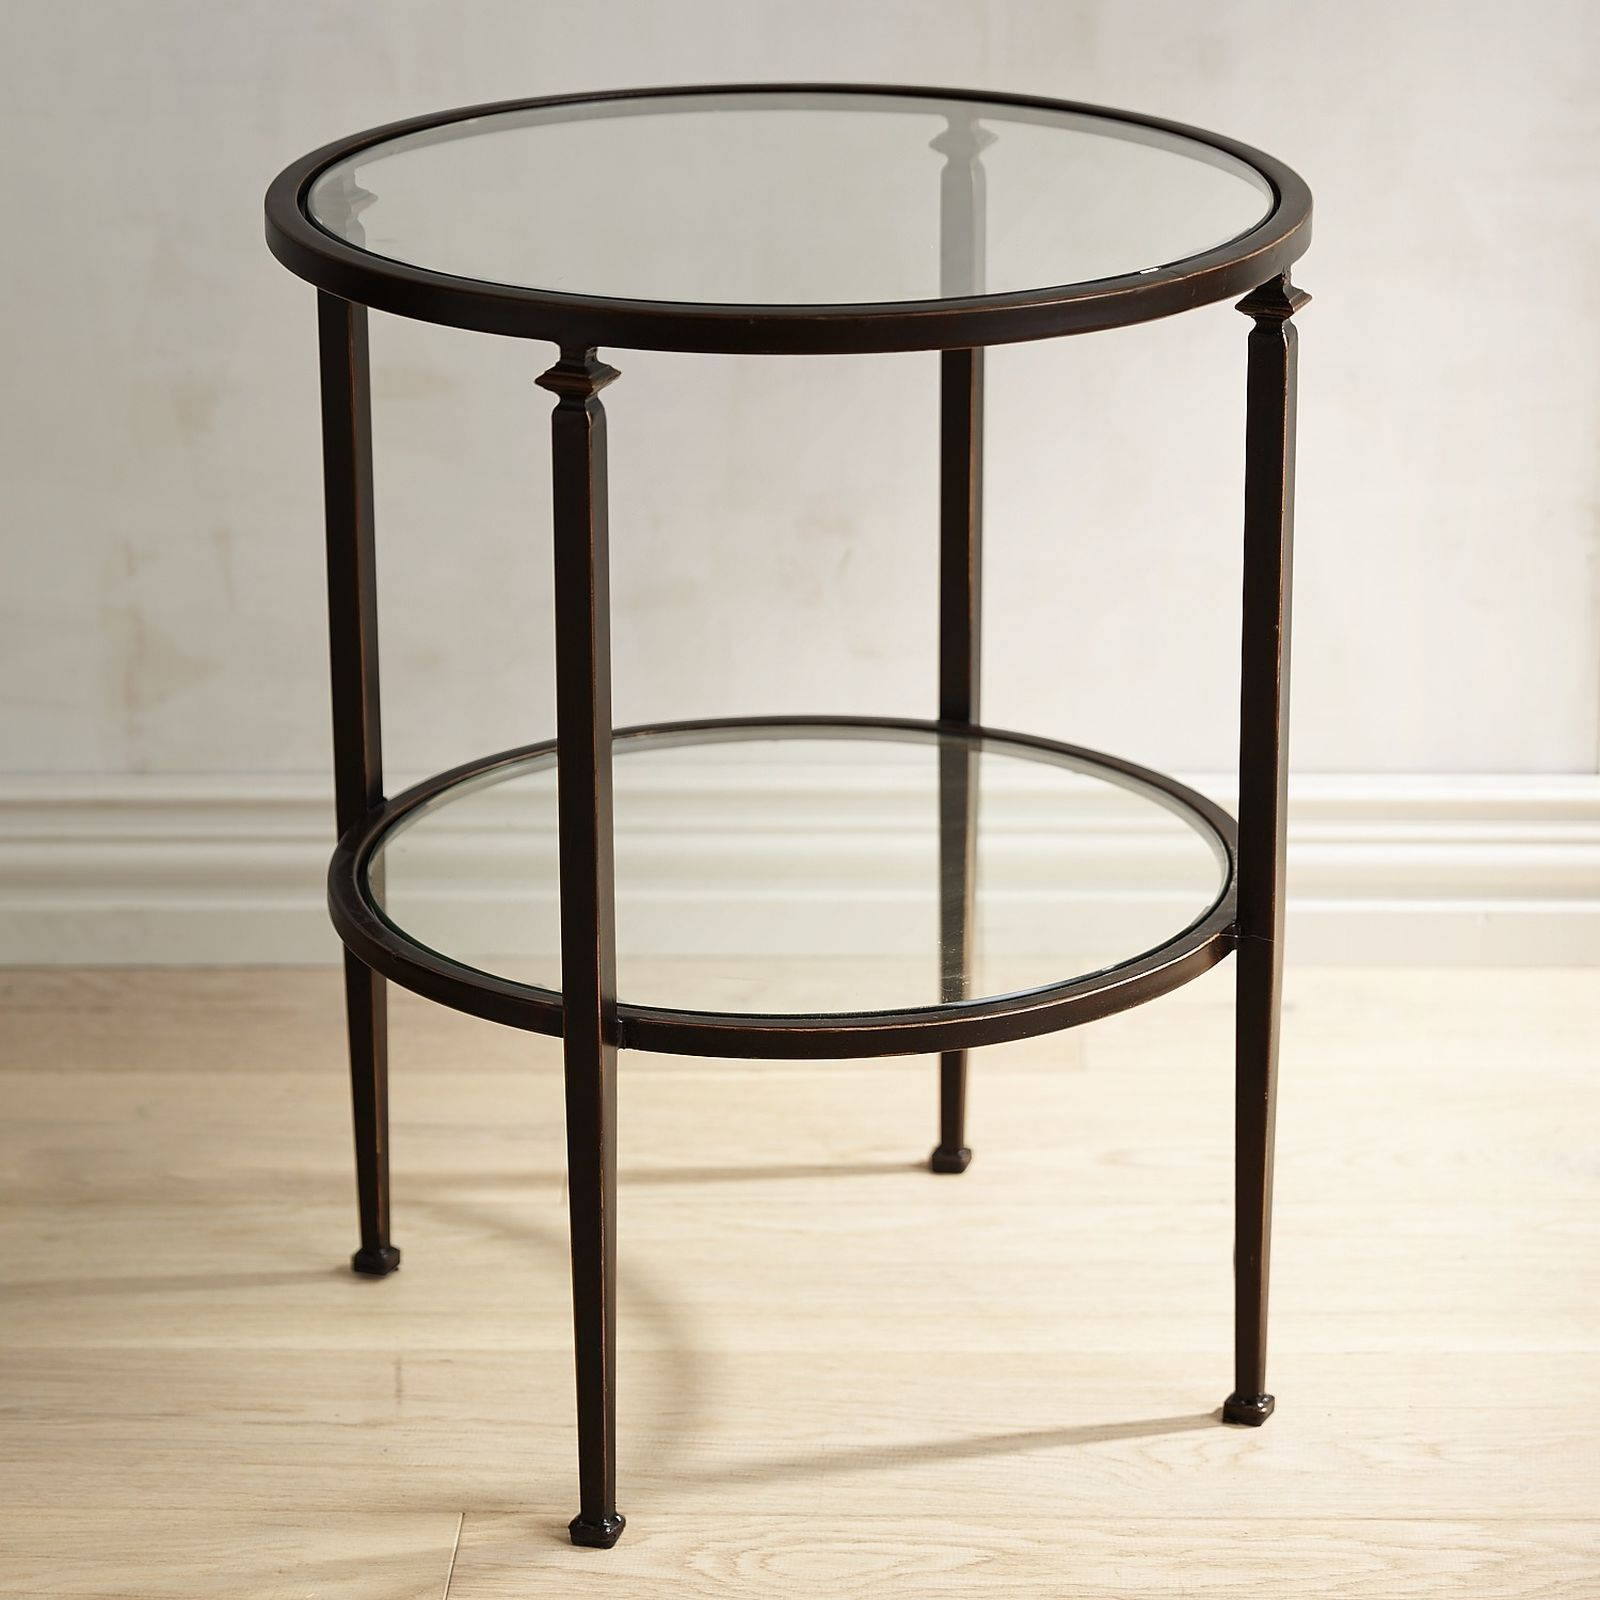 Our Lincoln Round End Table Has A Slender Bronze Wrought Iron